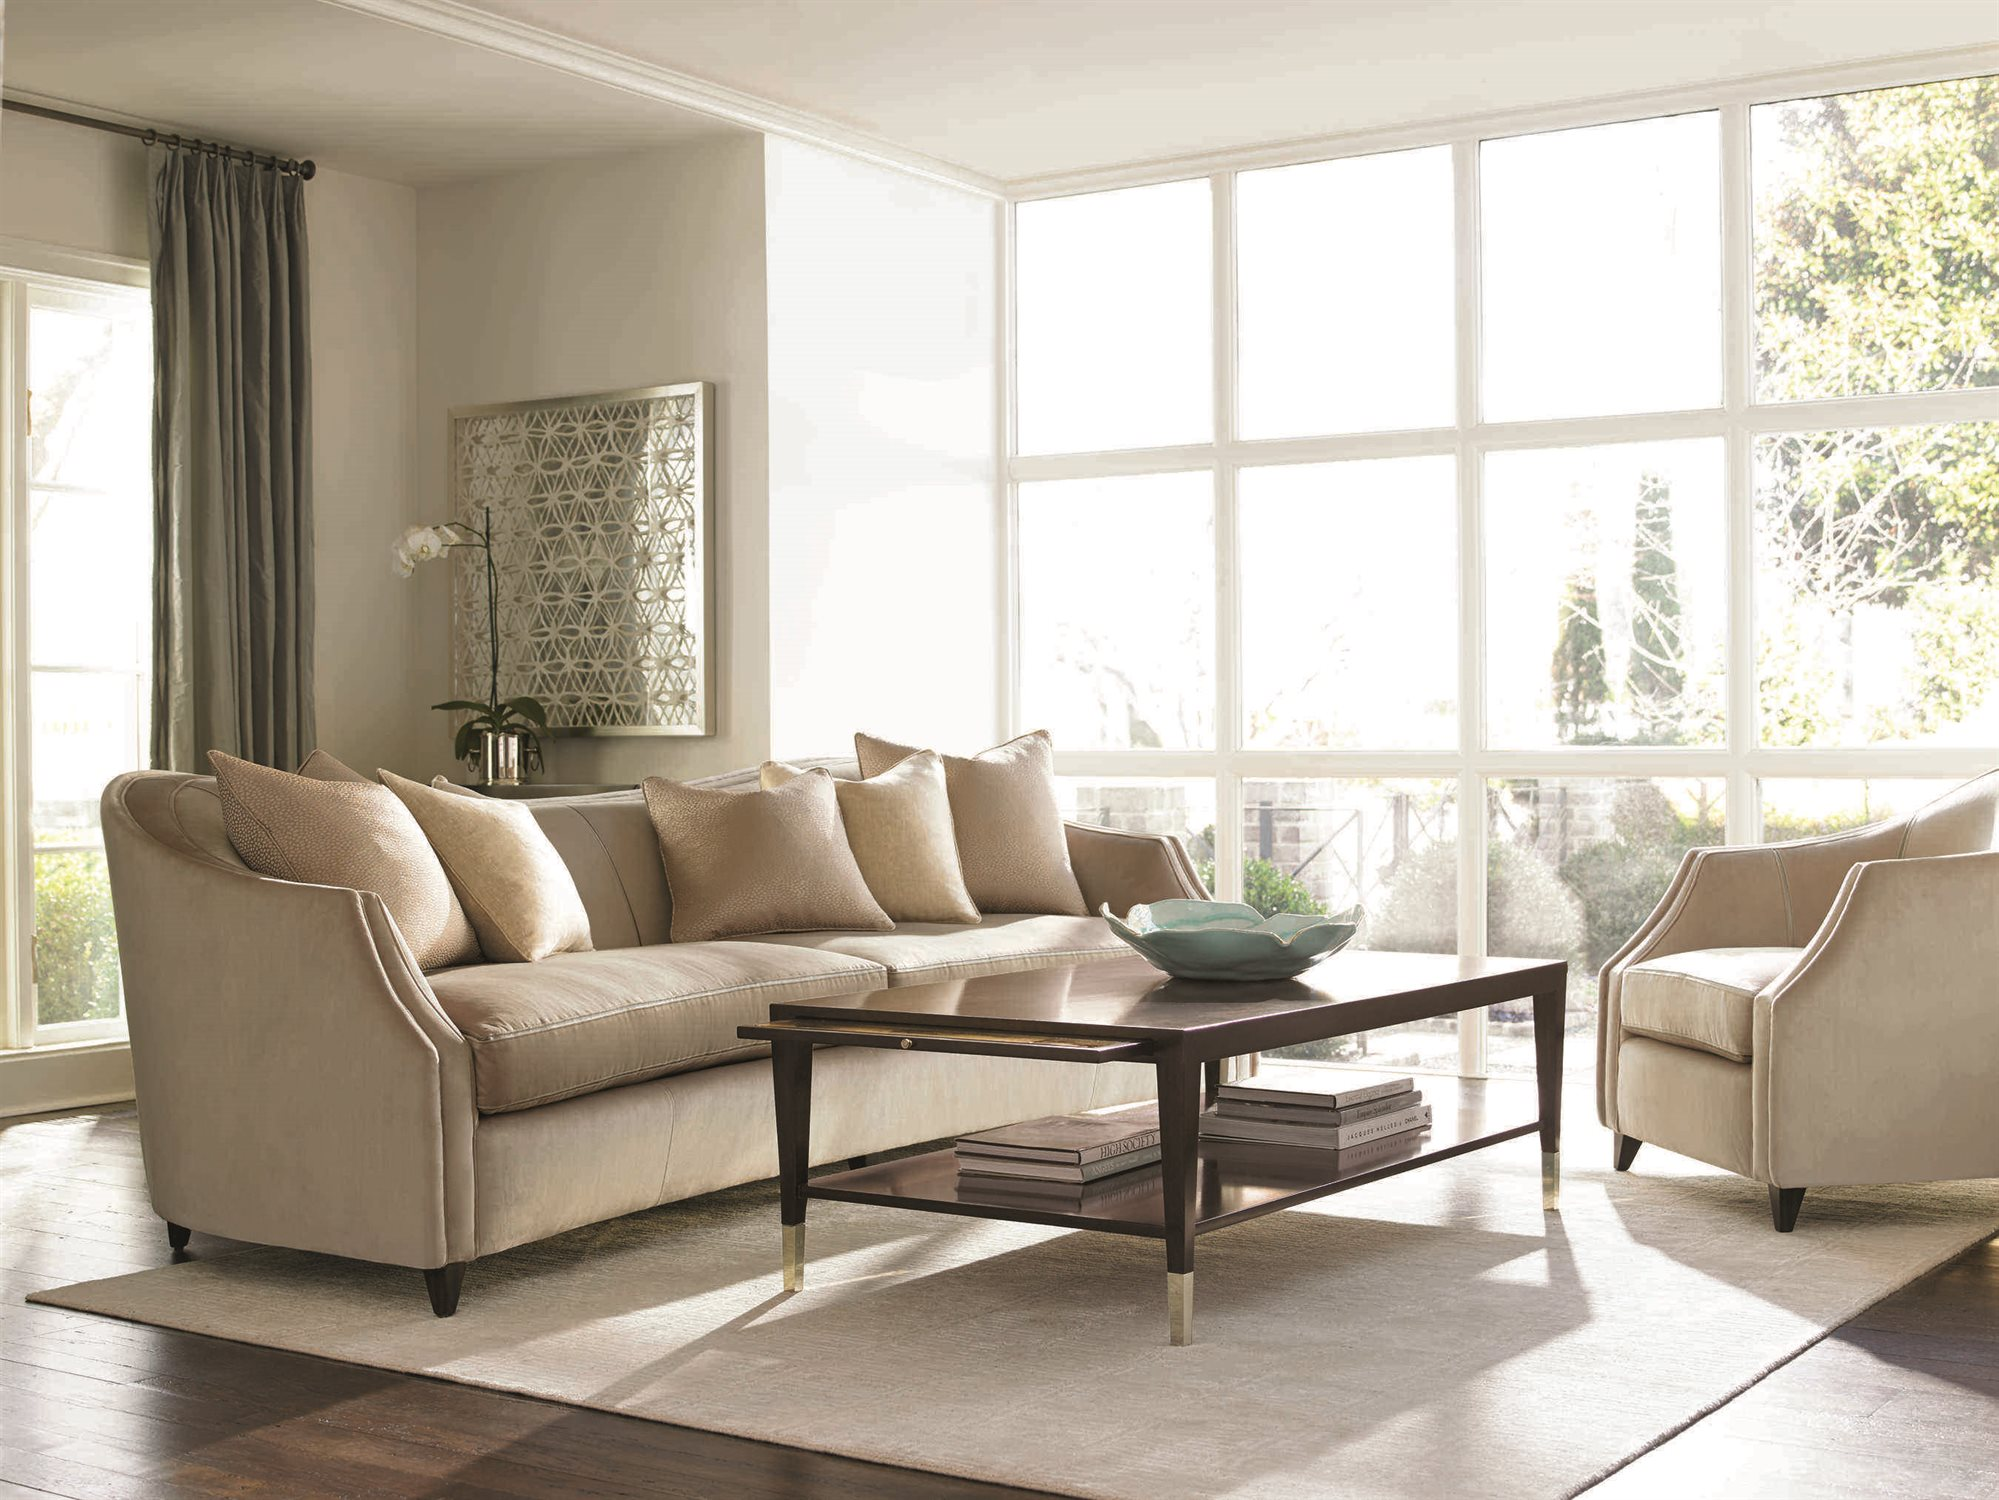 Caracole Classic Soft Camel French Roast Curvaceous Sofa